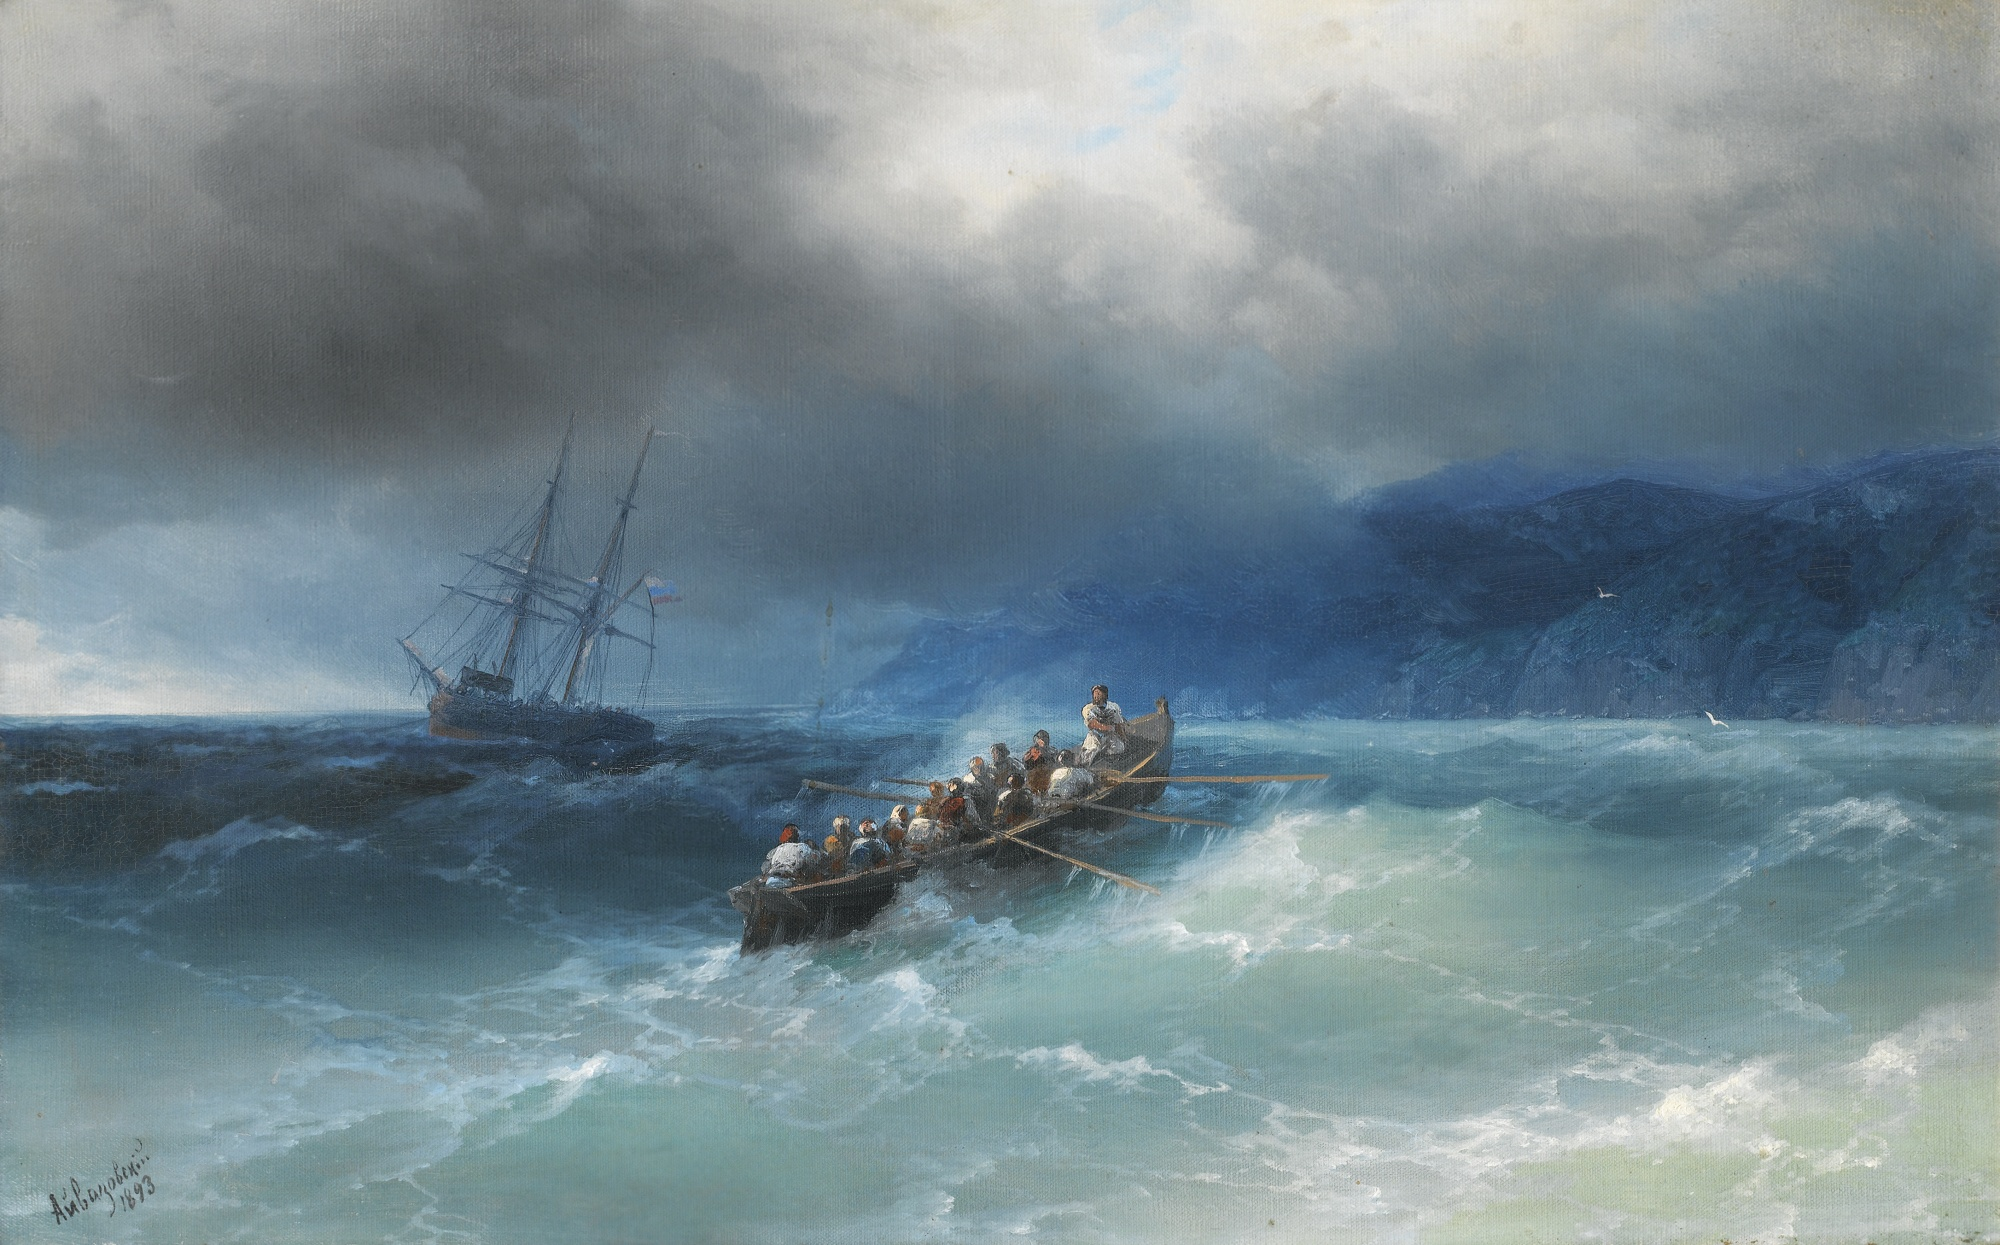 Storm over the Black Sea, by Ivan Konstantinovich Aivazovsky, 1893